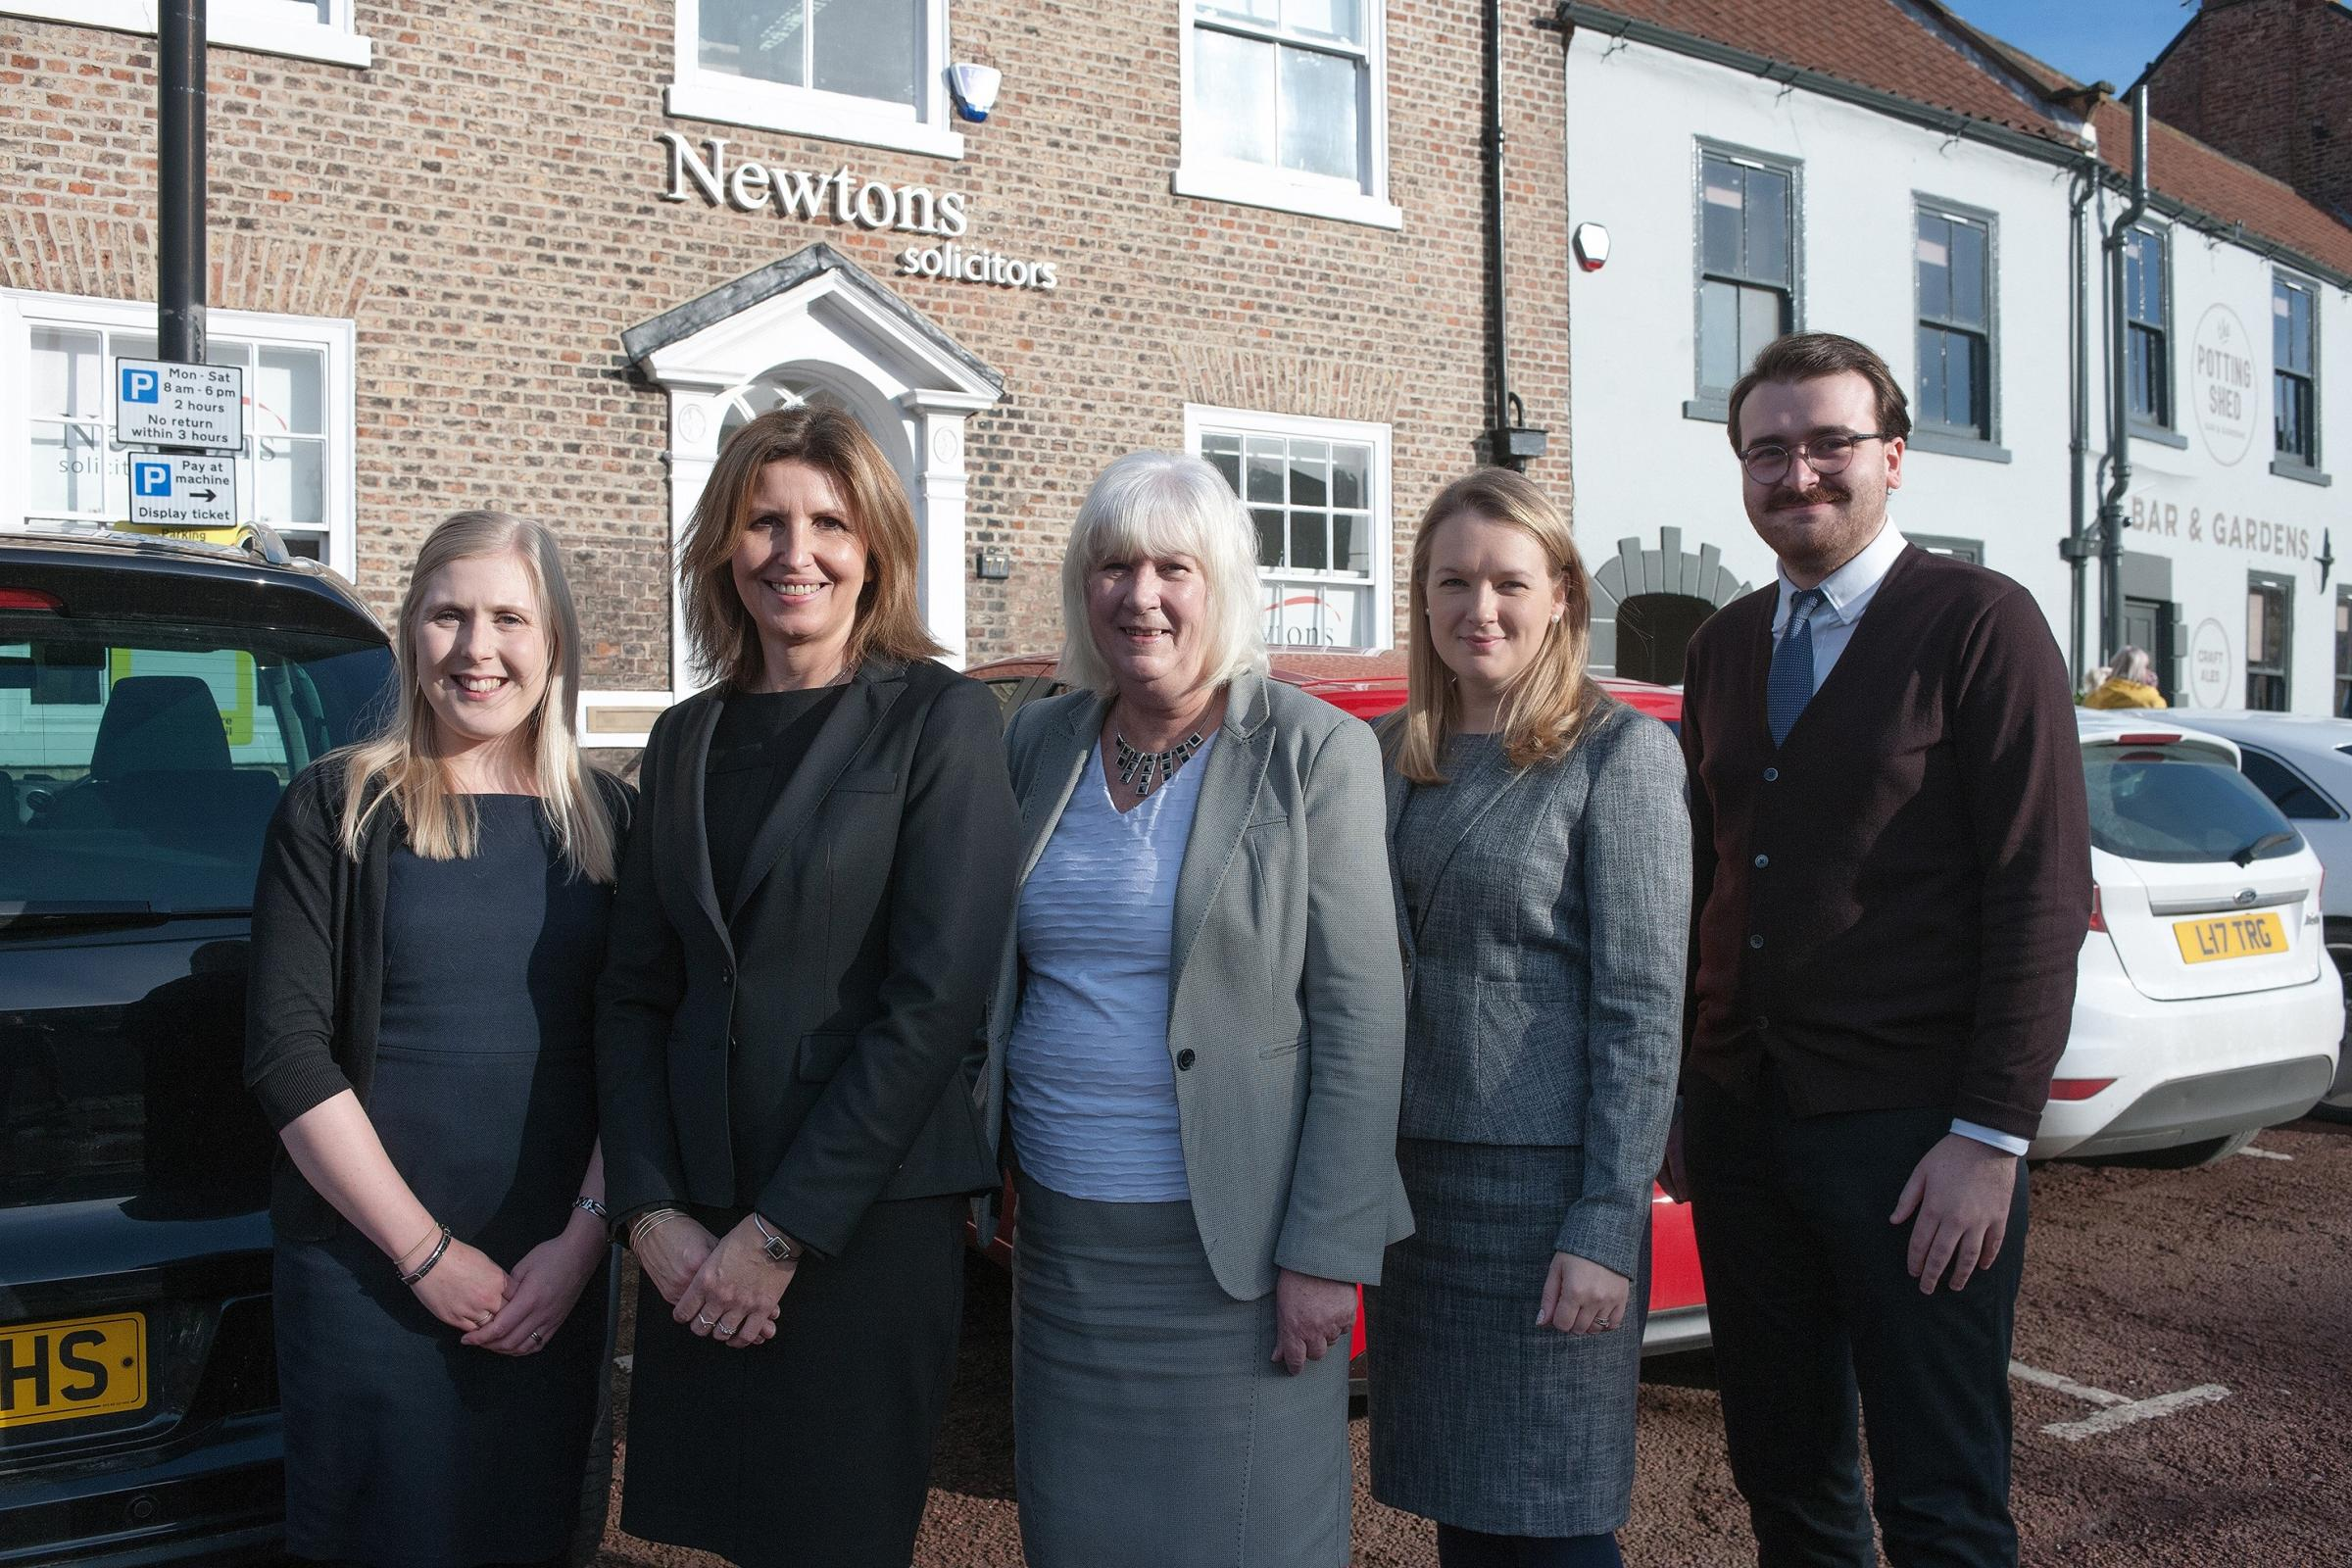 WELCOME: Katie Ward, far left, with Fran Maxwell, Dorothy Price, Elizabeth Whitaker and Jack Stainthorpe